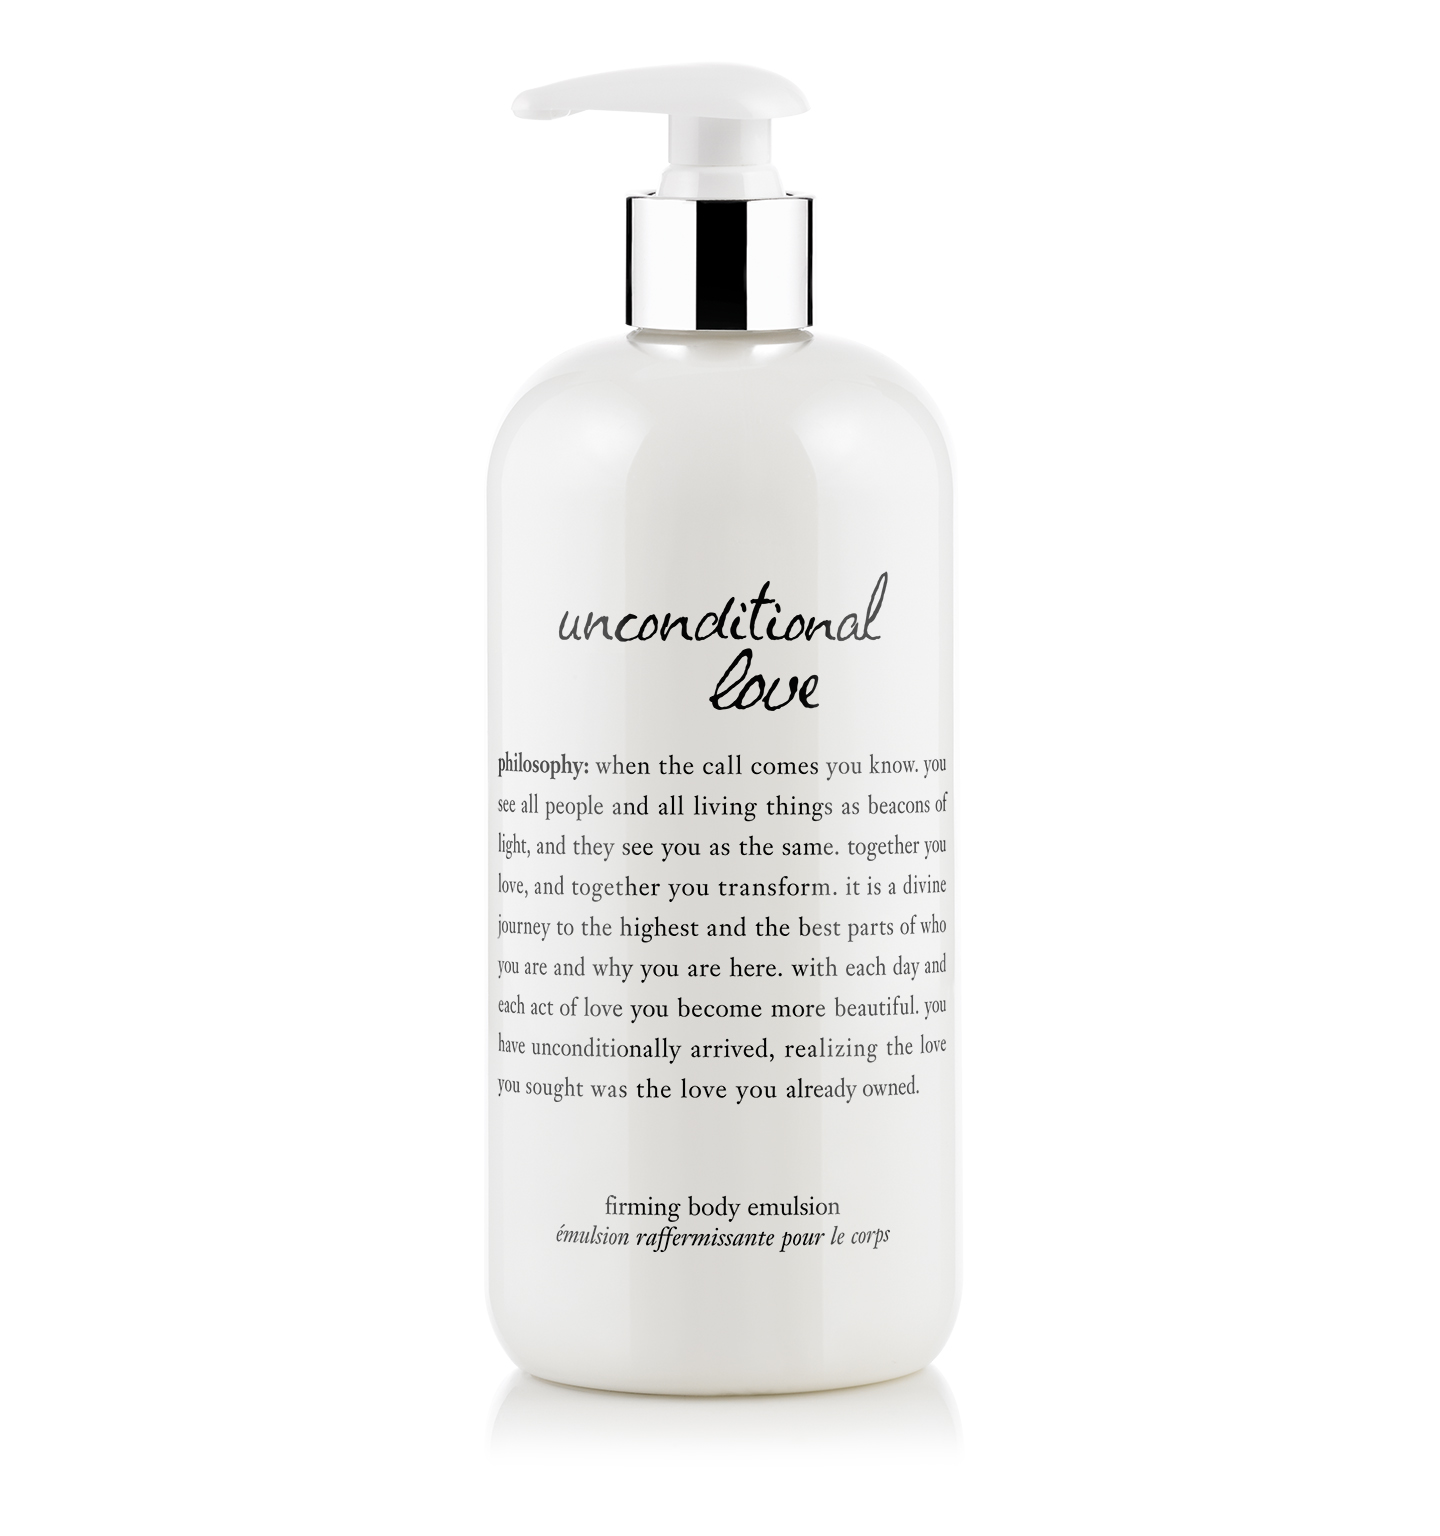 philosophy, unconditional love 16 oz body emulsion